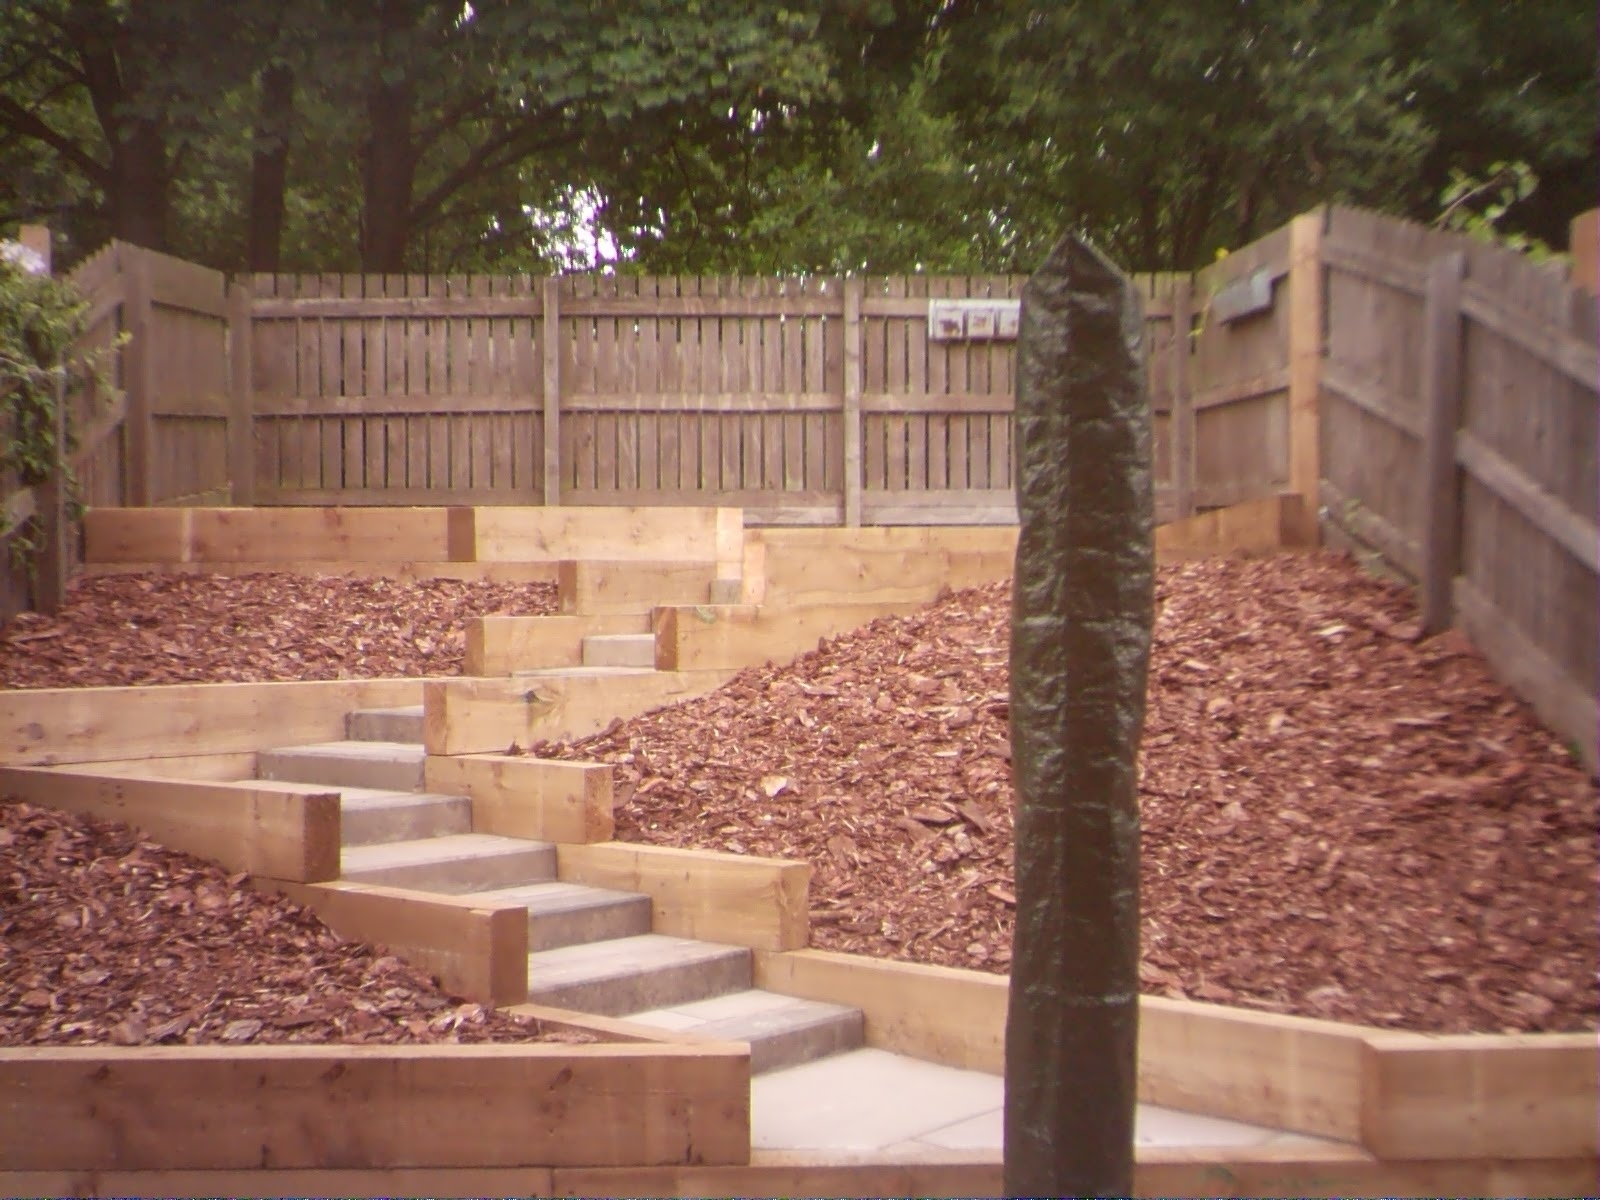 Time Lapse Garden Landscaping Railway Sleeper Retaining Walls With Landscape Timbers Retaining Wall Durable Landscape Timbers Retaining Wall For Great Decoration